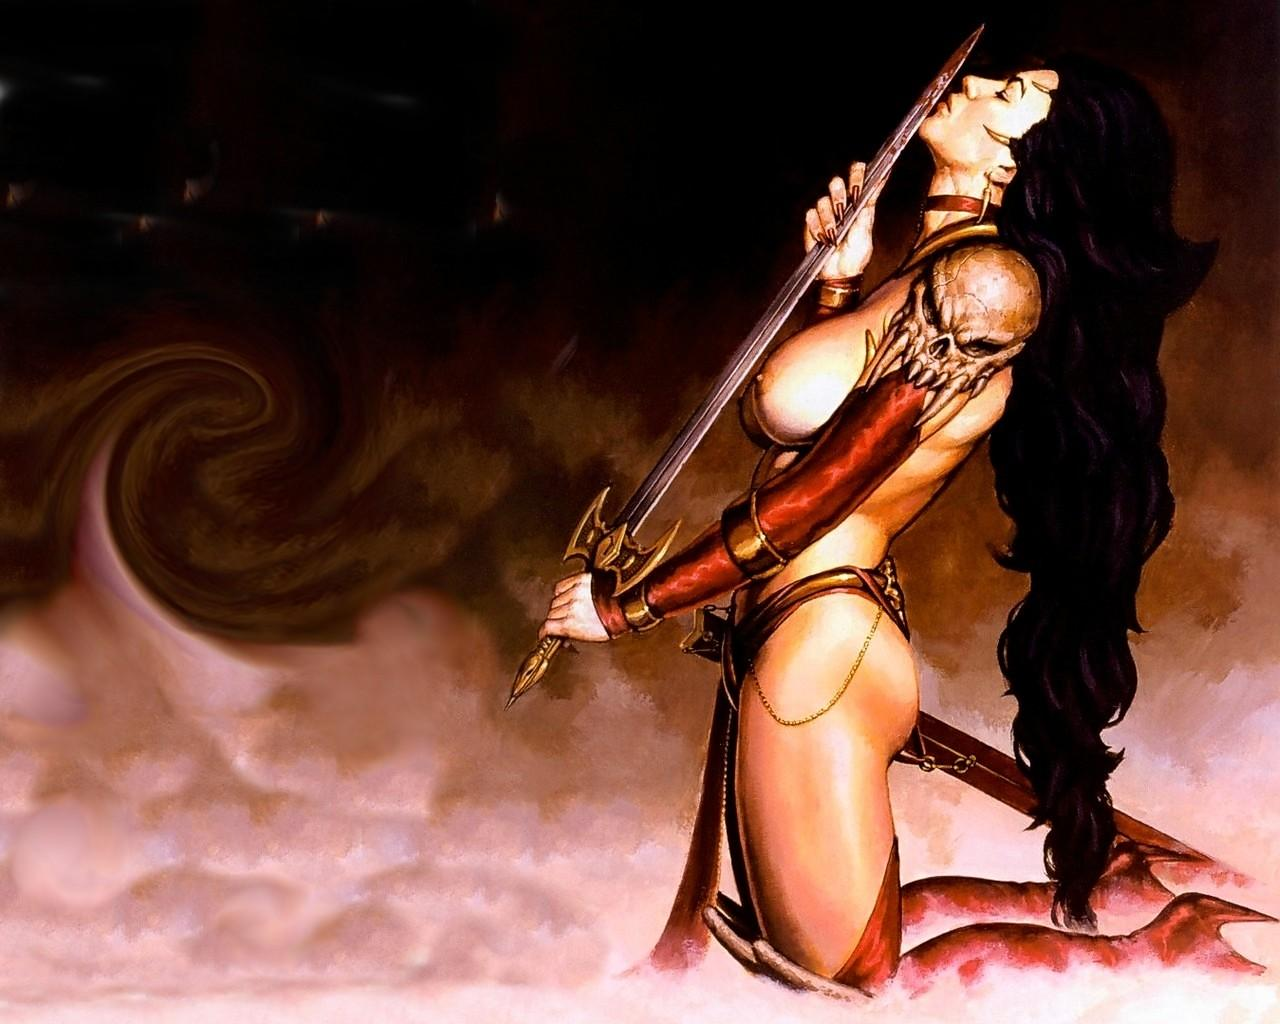 Nude woman warrior wallpapers art sexual streaming